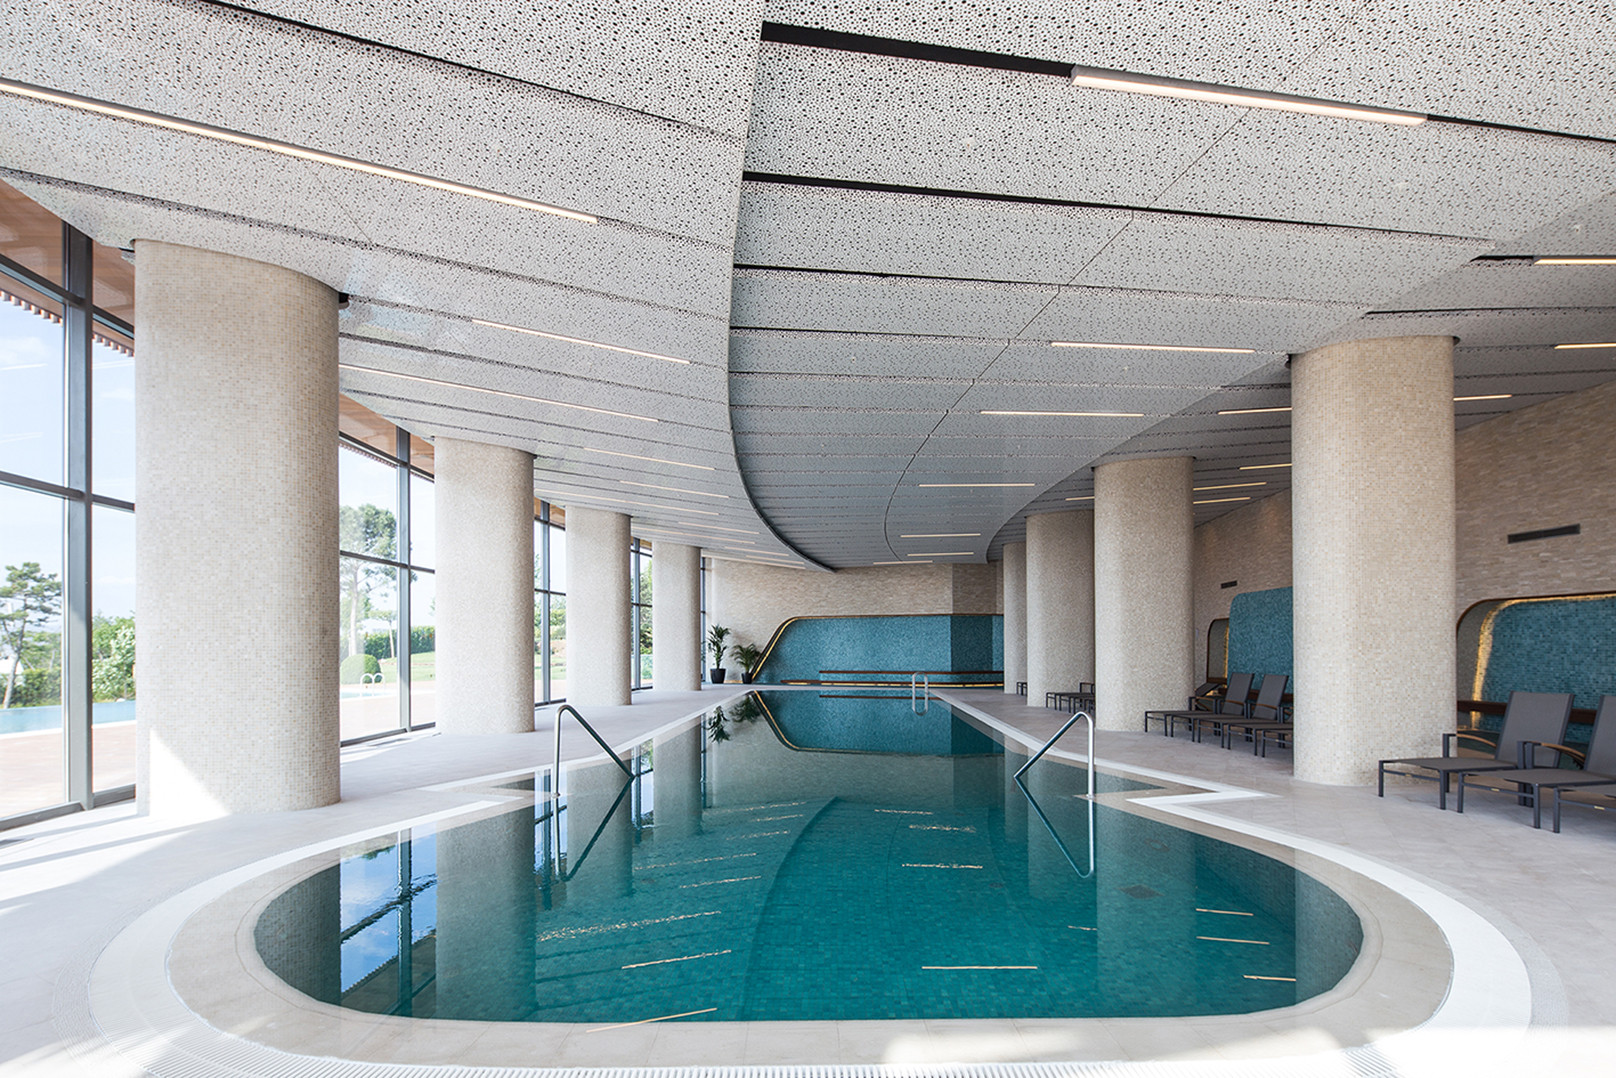 Gallery of eskisehir hotel and spa gad architecture 3 for Salon architecture